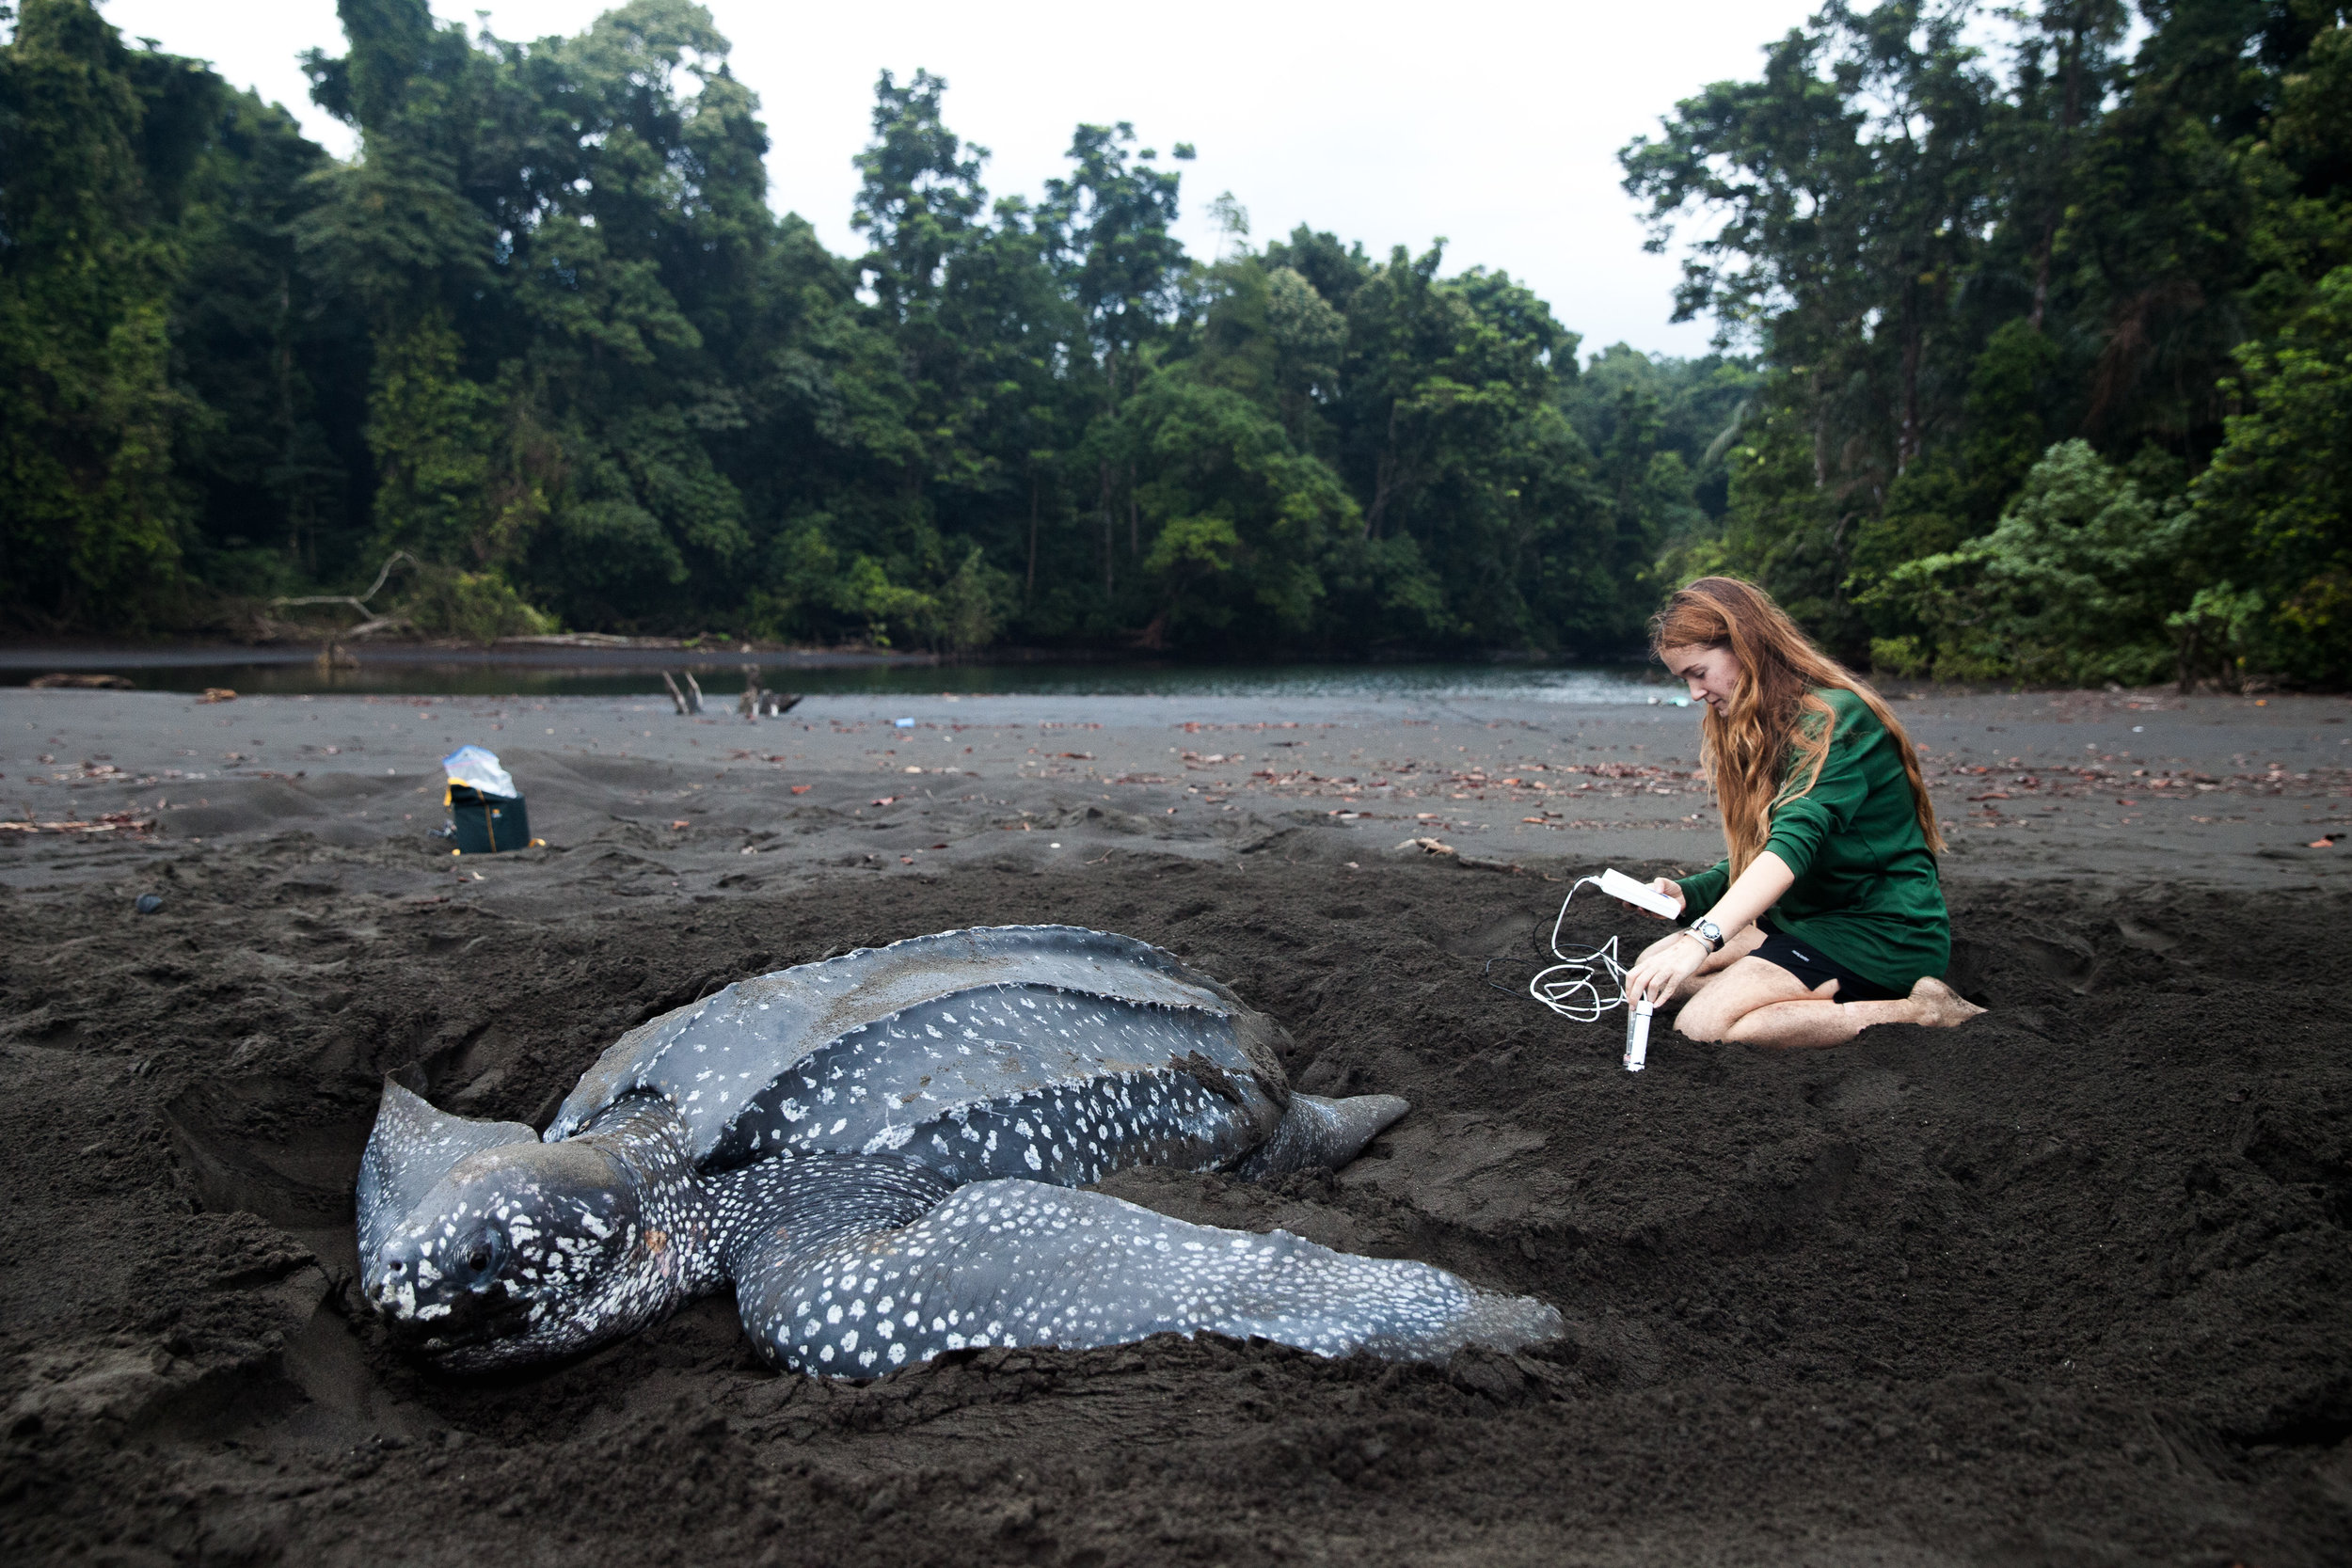 Measuring sand characteristics at a leatherback nest